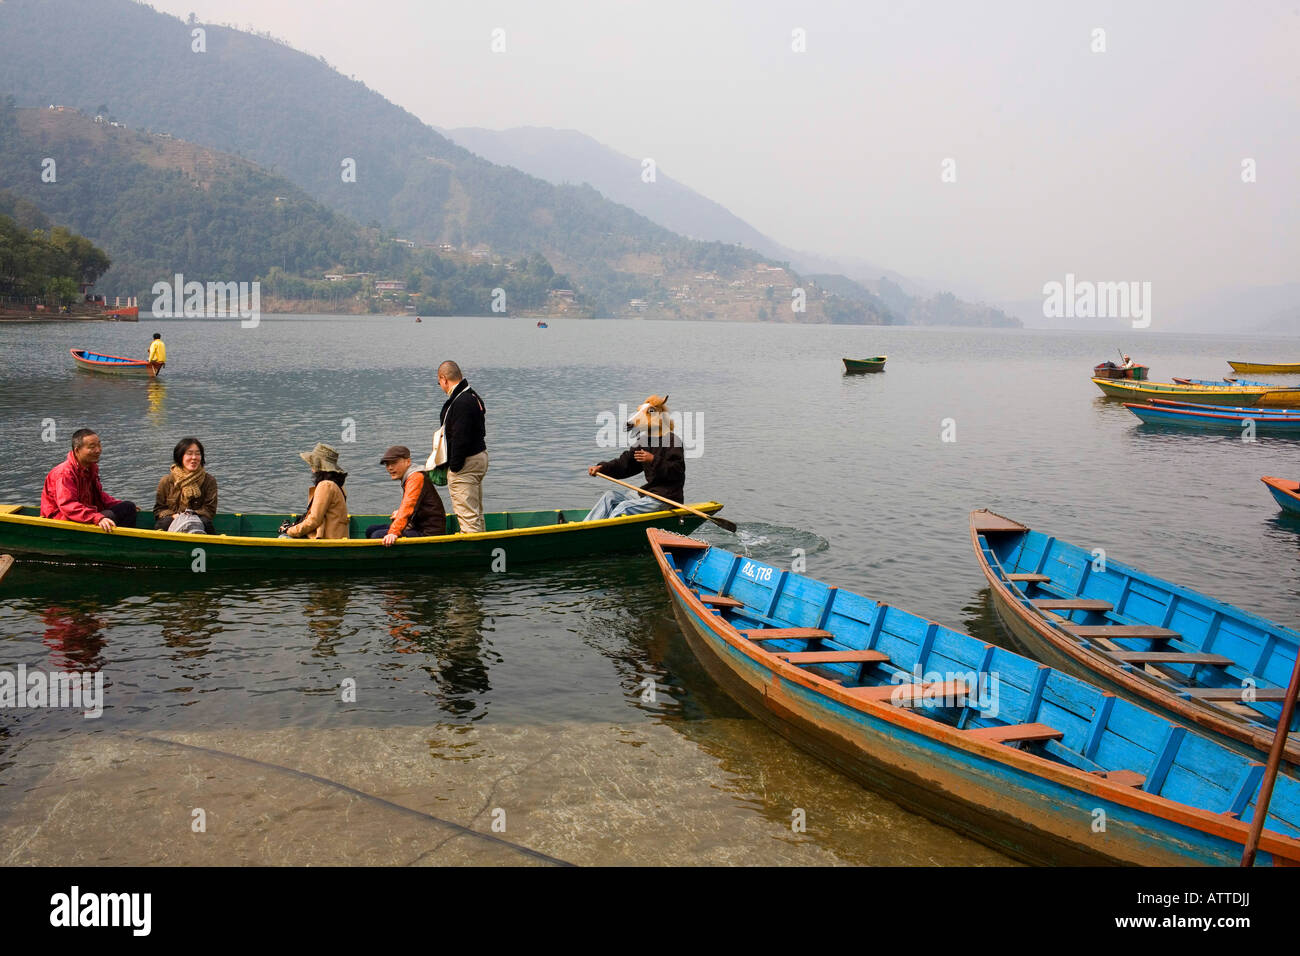 A man in a horse mask ferries tourists across a lake in Pokhara. - Stock Image